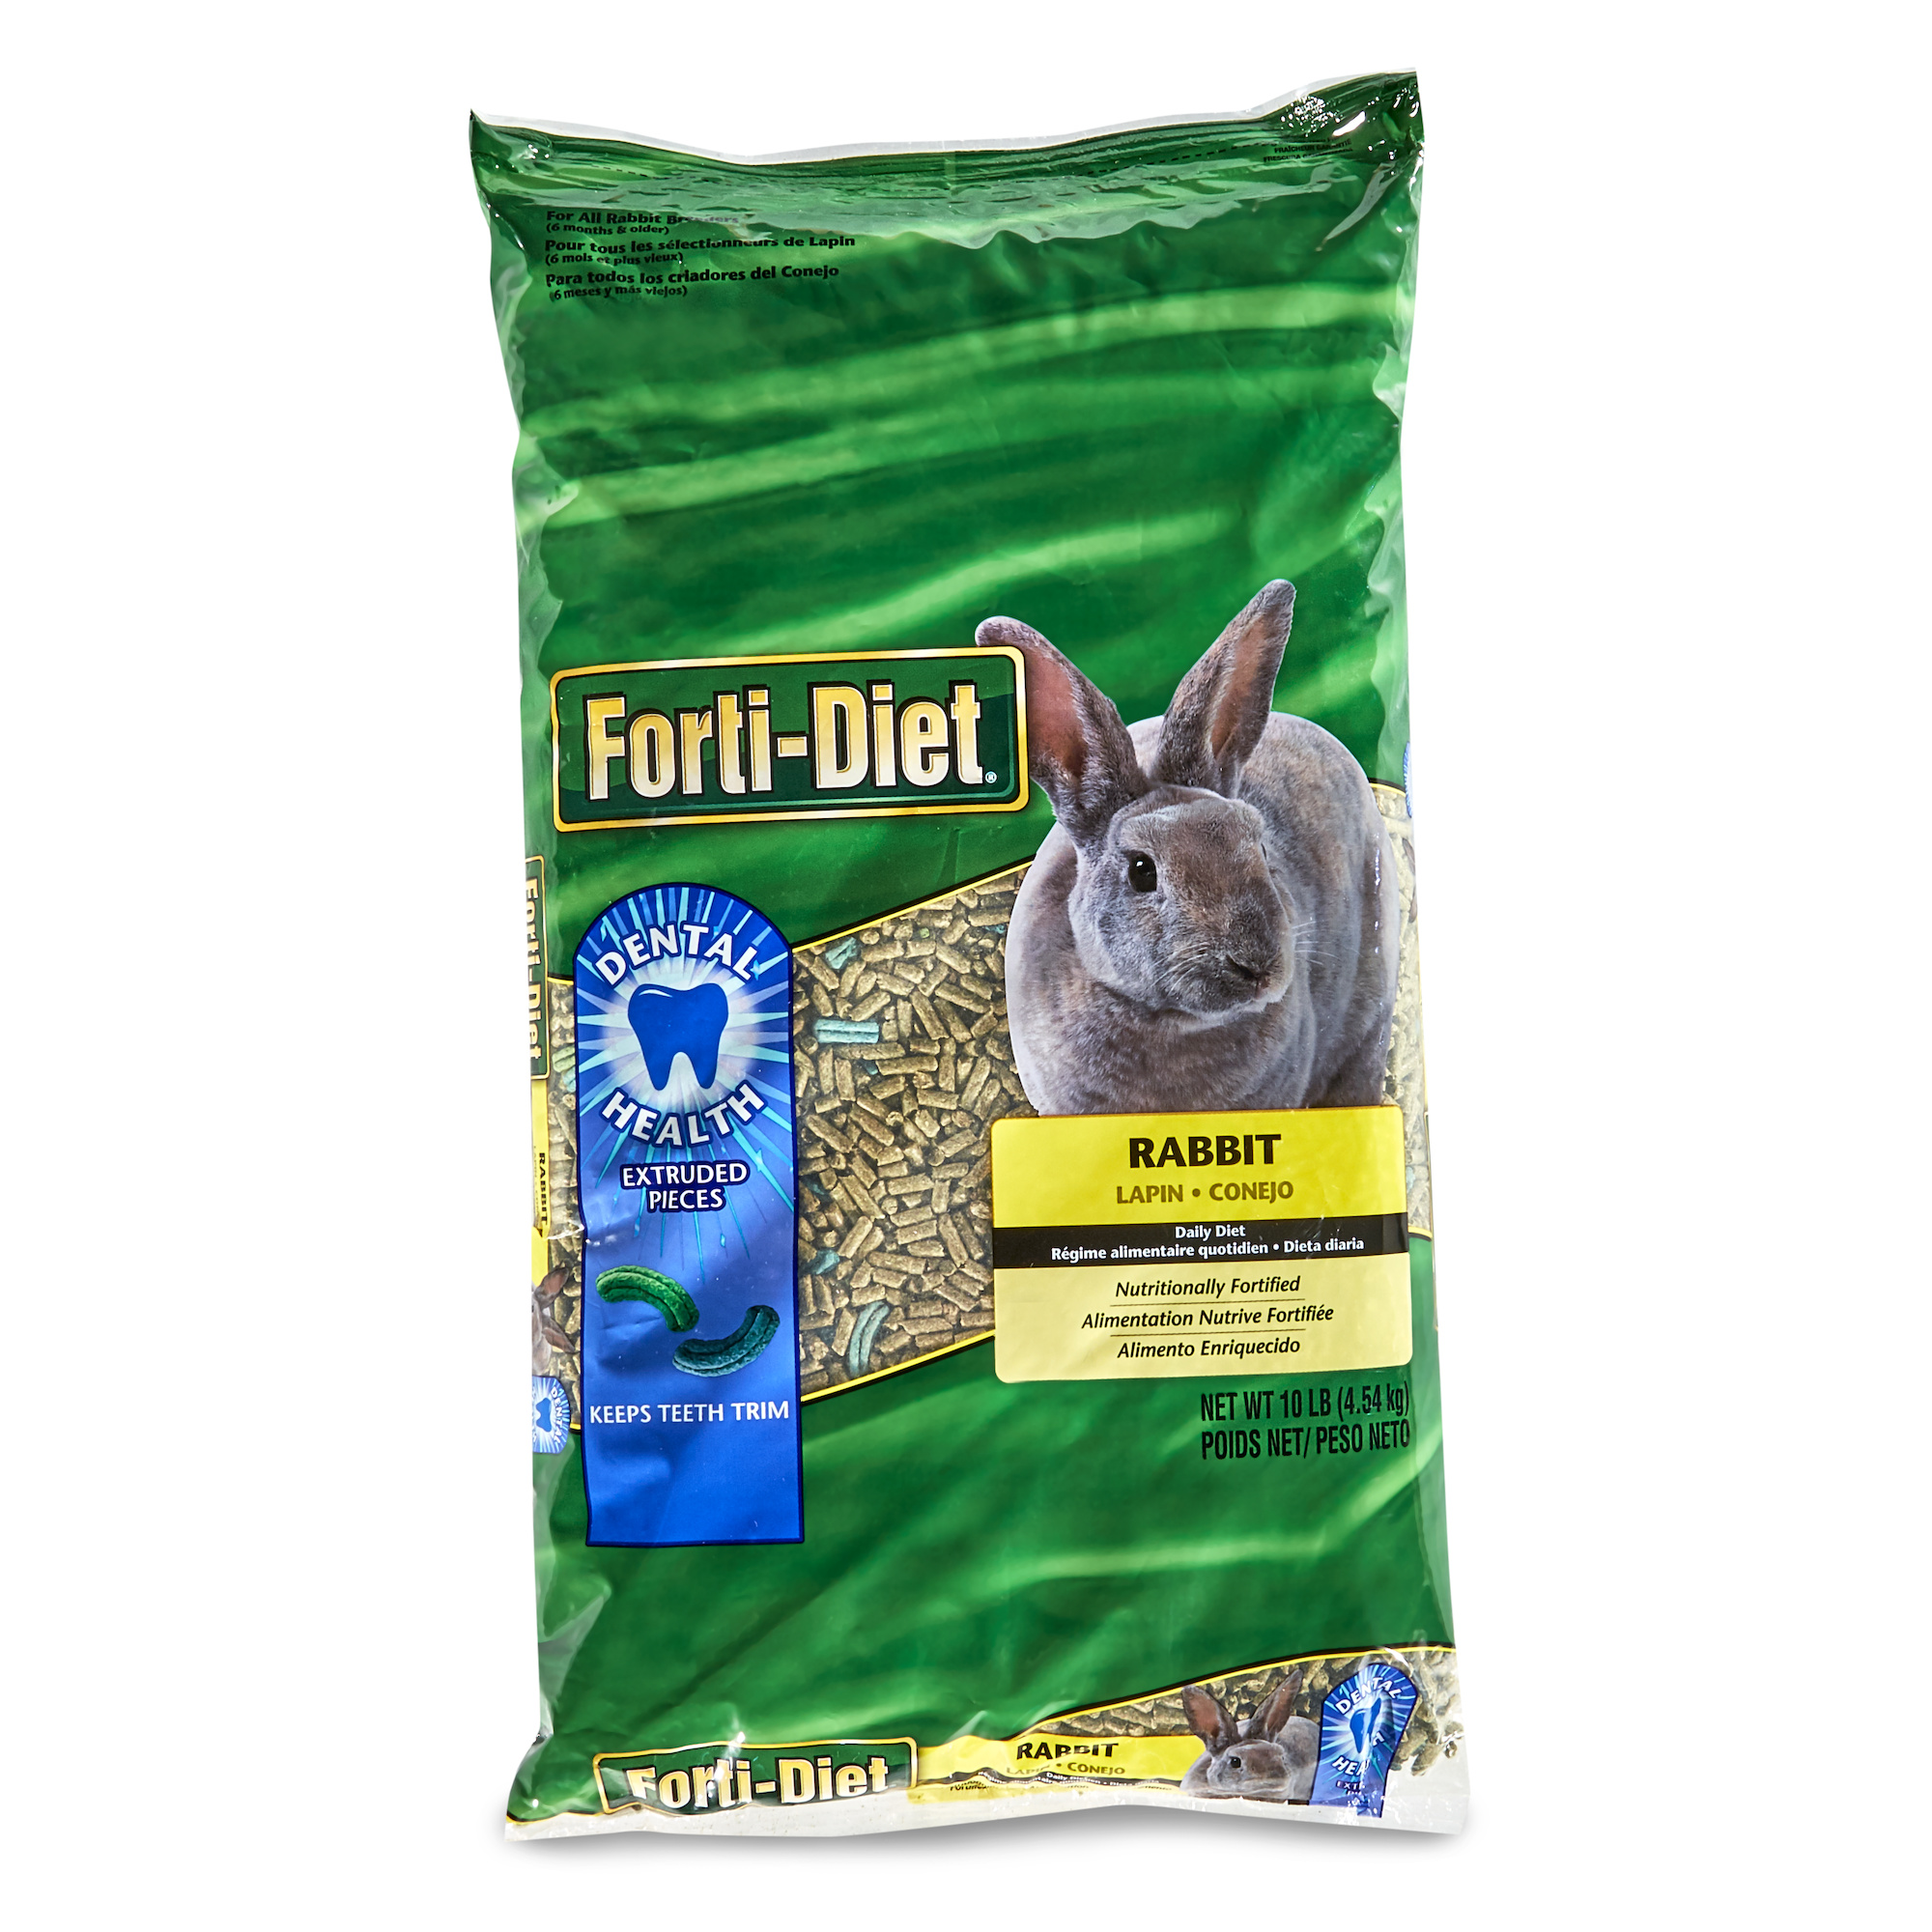 Forti-Diet Pet Rabbit Food, 10 lbs. by Central Garden & Pet